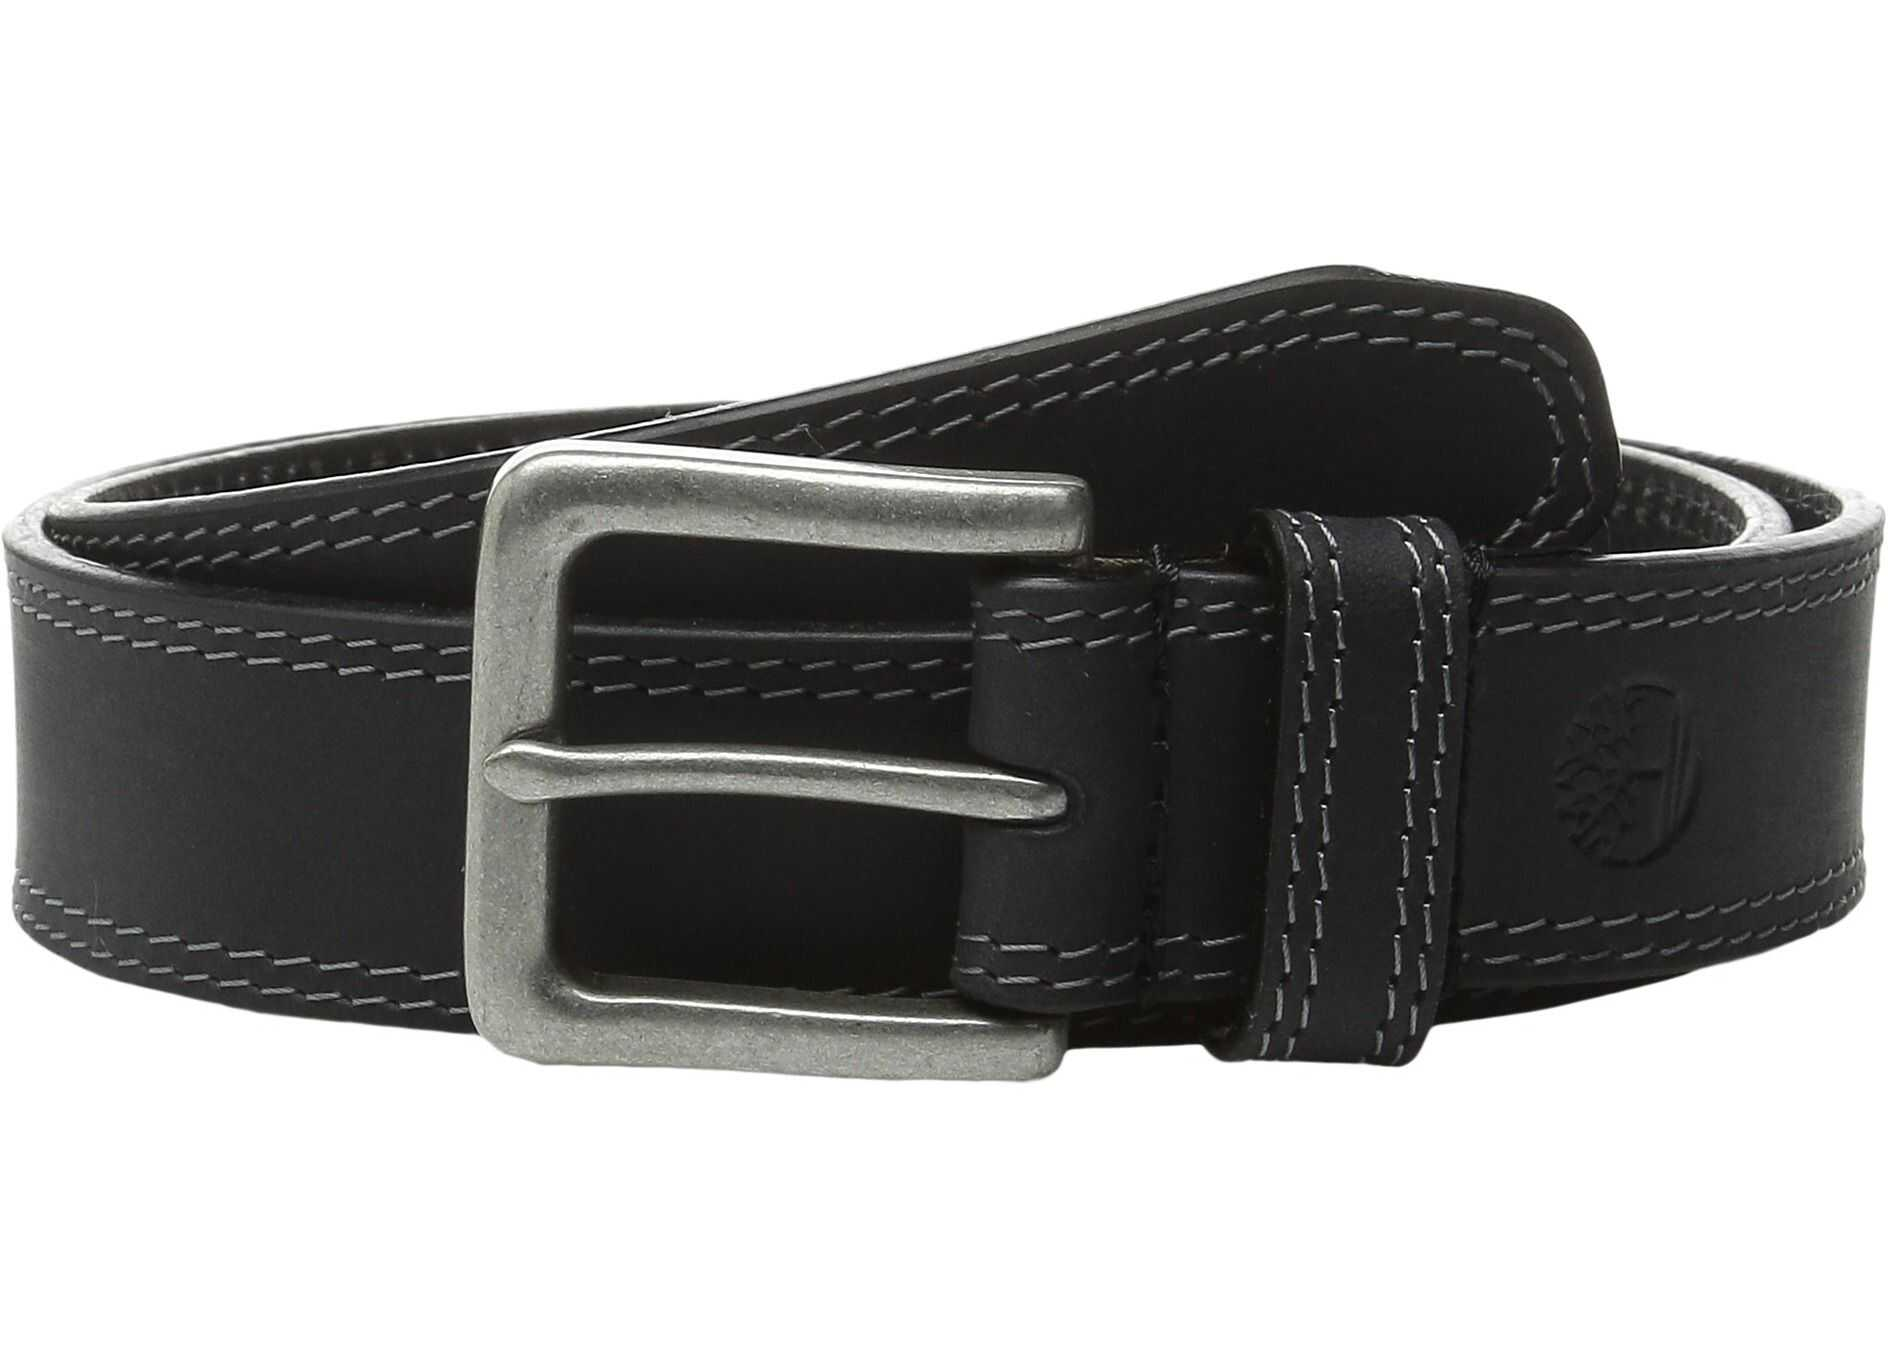 Timberland Boot Leather Belt Black 1